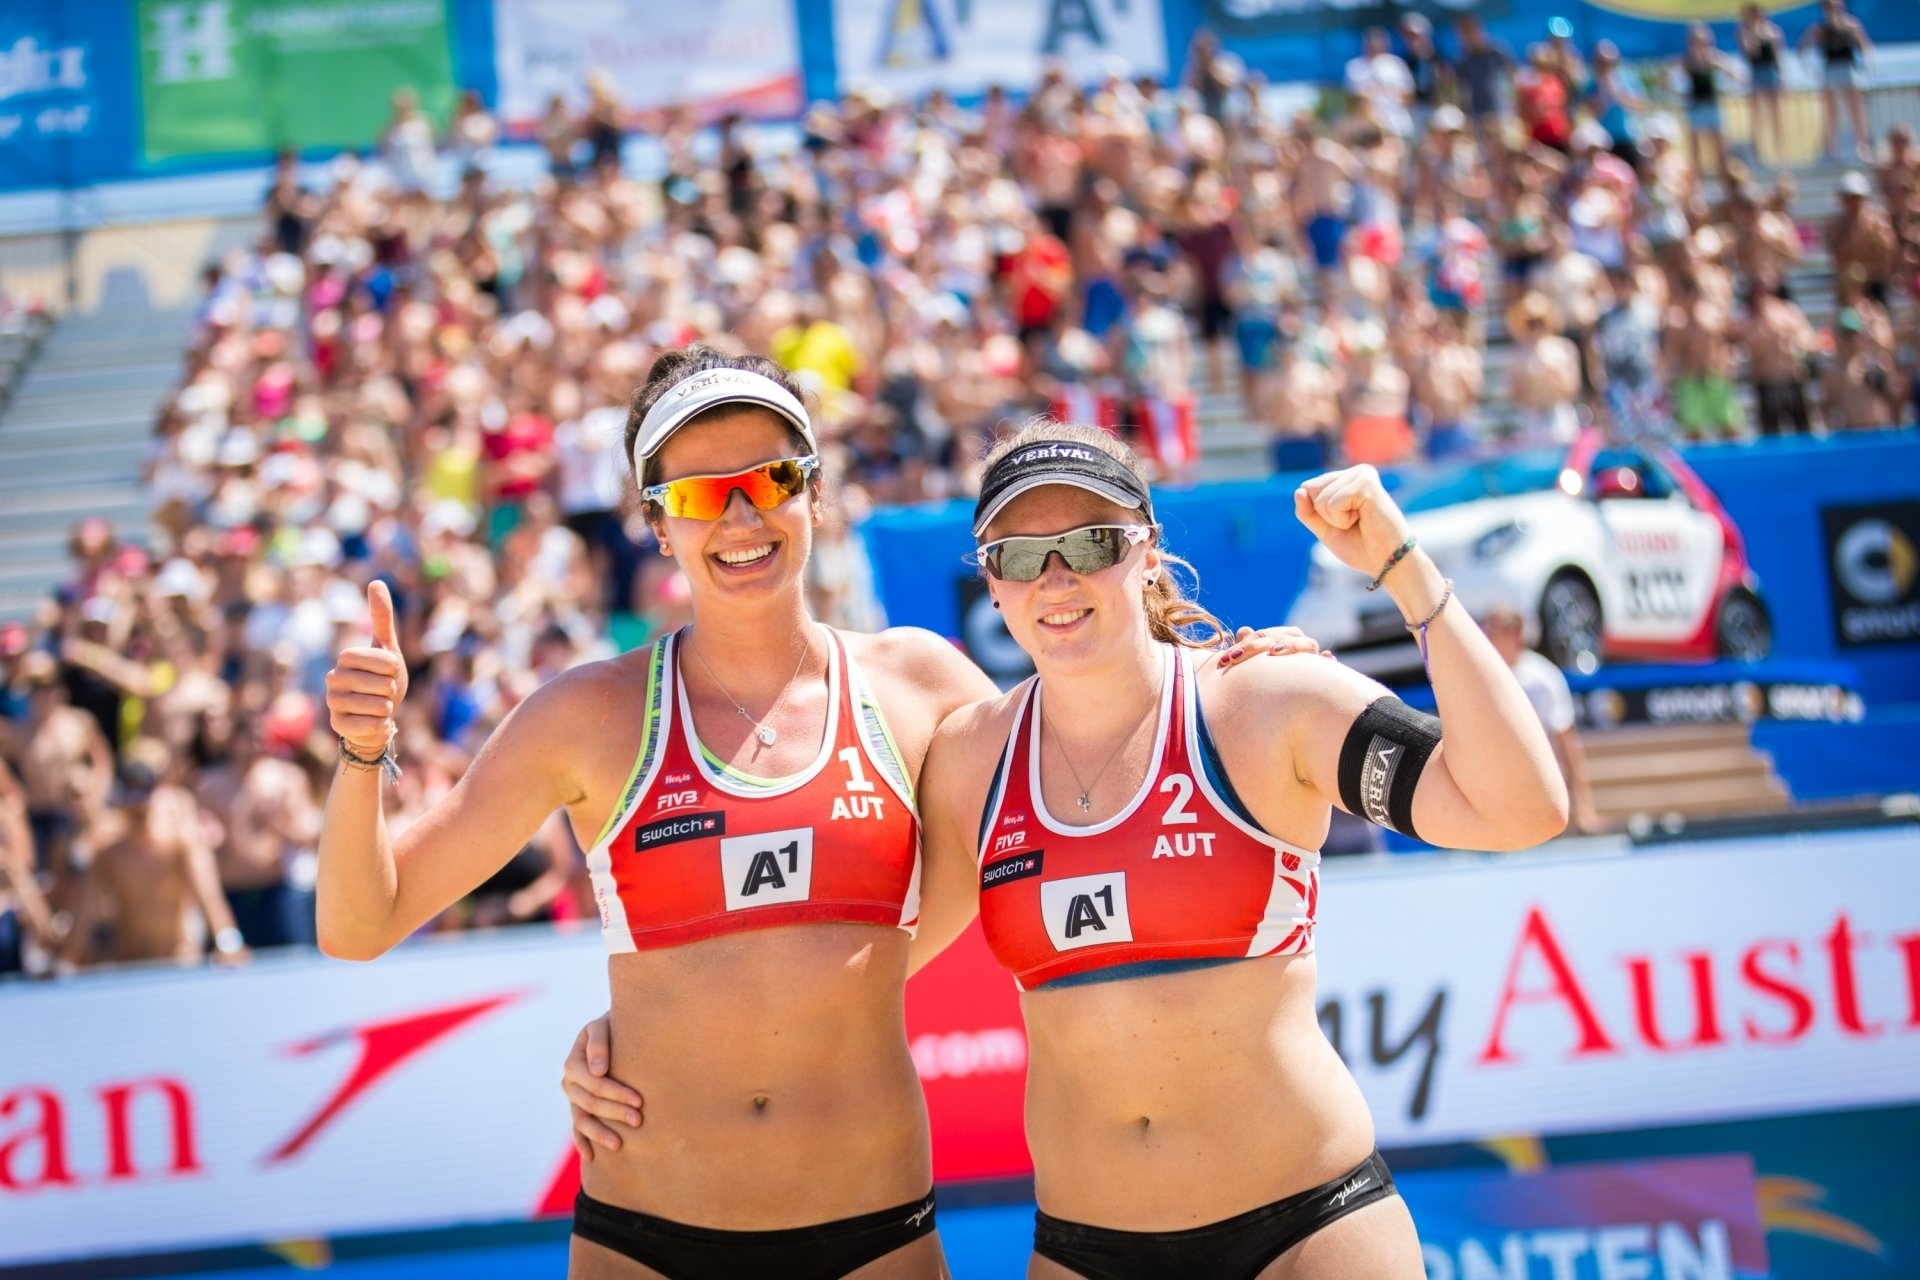 Lena and Kathi won their first ever World Tour gold in Turkey - congratulations girls!